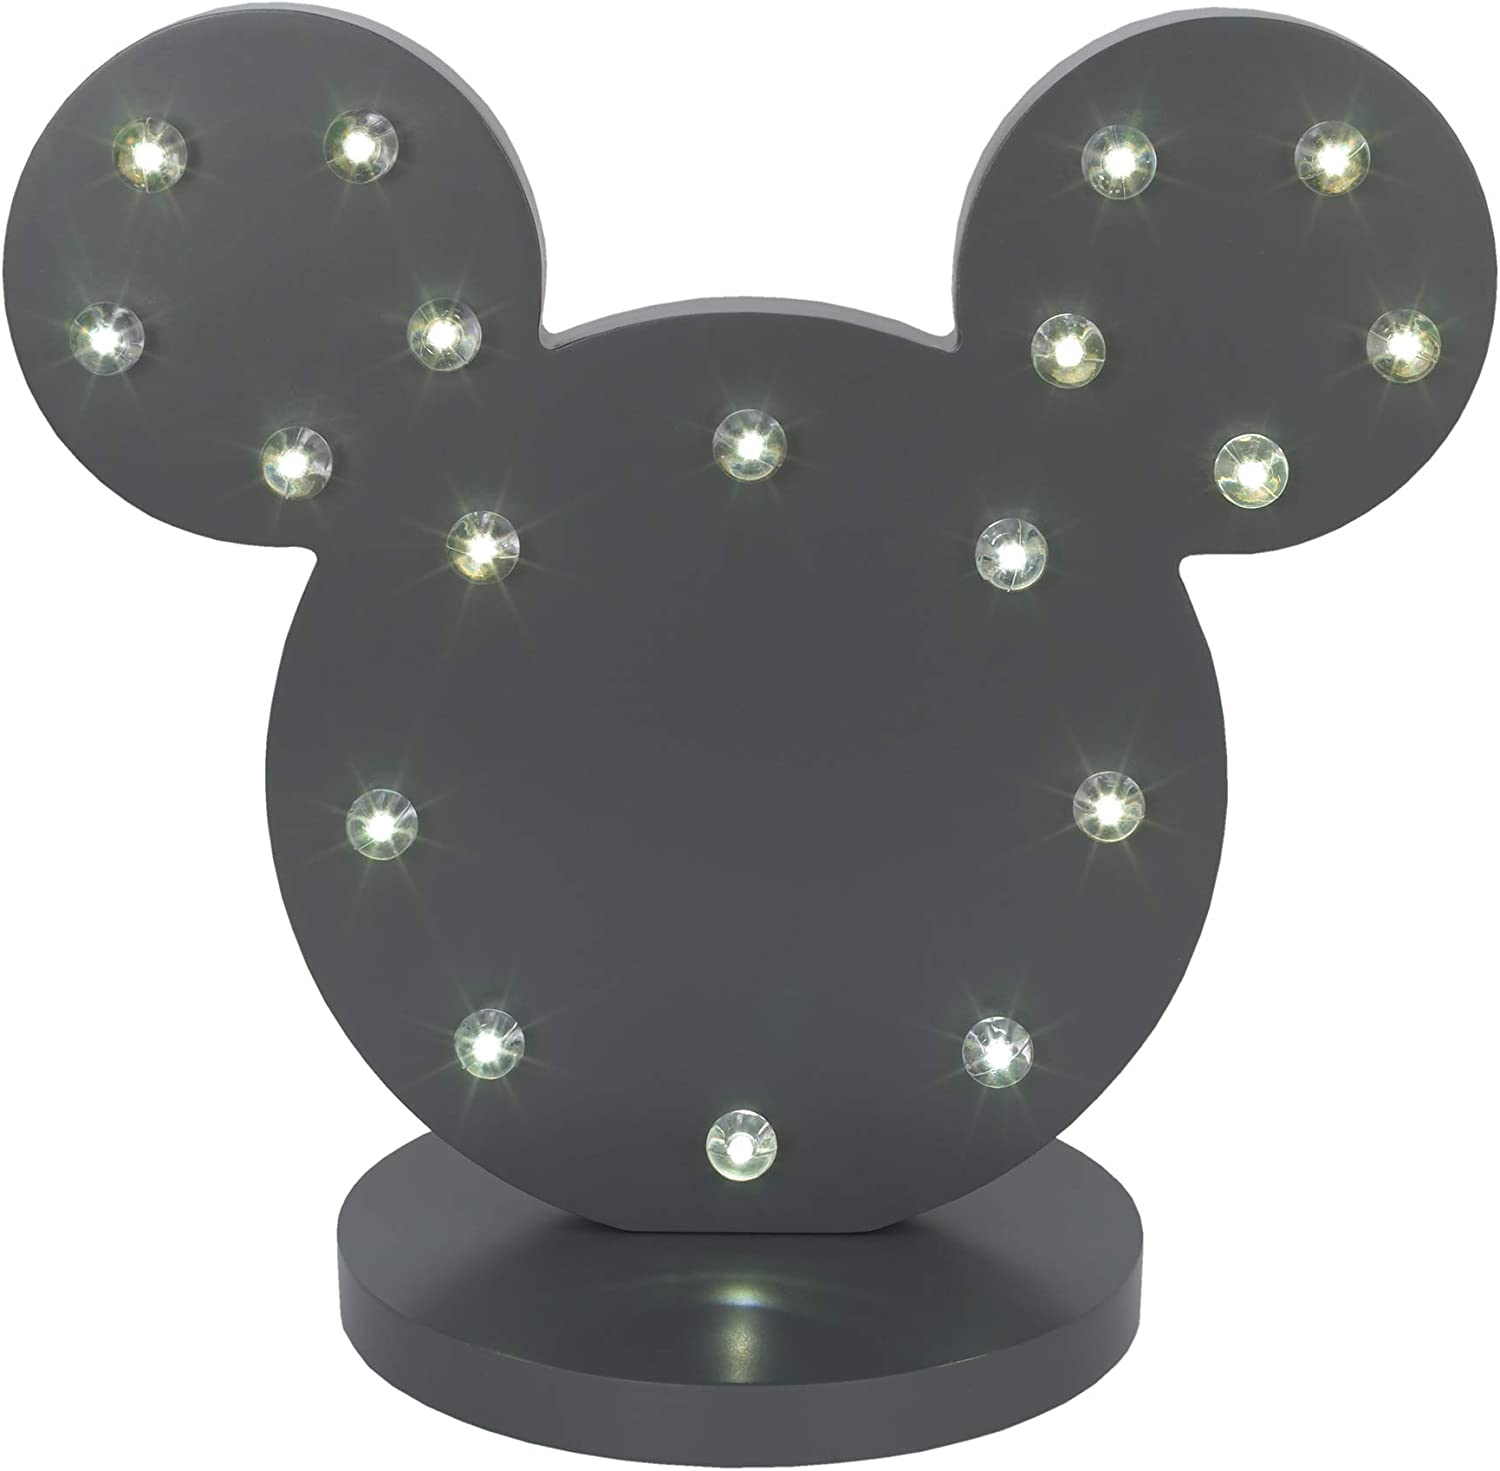 Disney Mickey Mouse Standing Marquee Lighted Room Decor, Dark Grey Charcoal